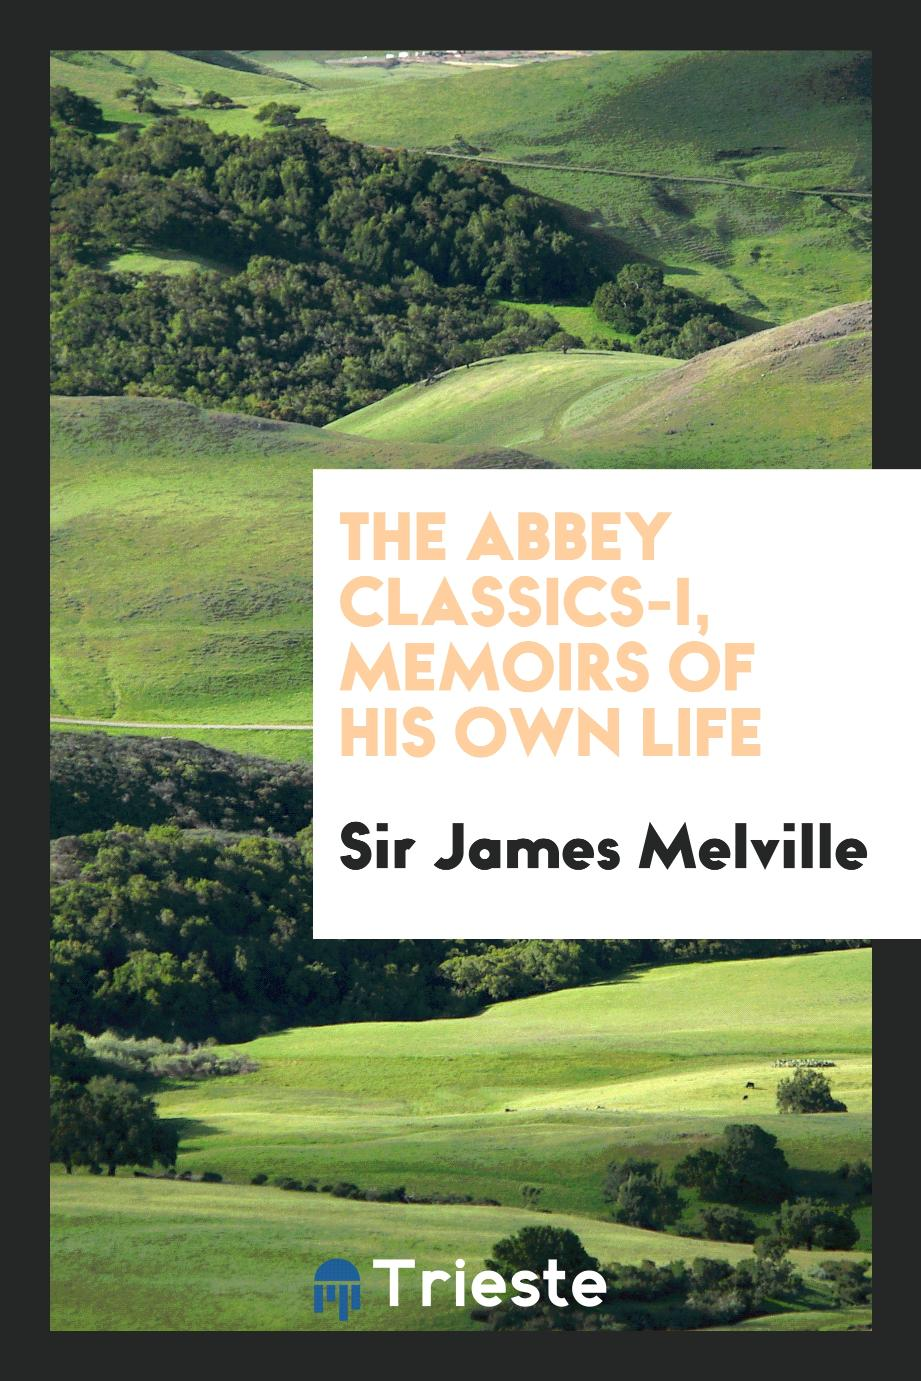 The Abbey Classics-I, Memoirs of his own life